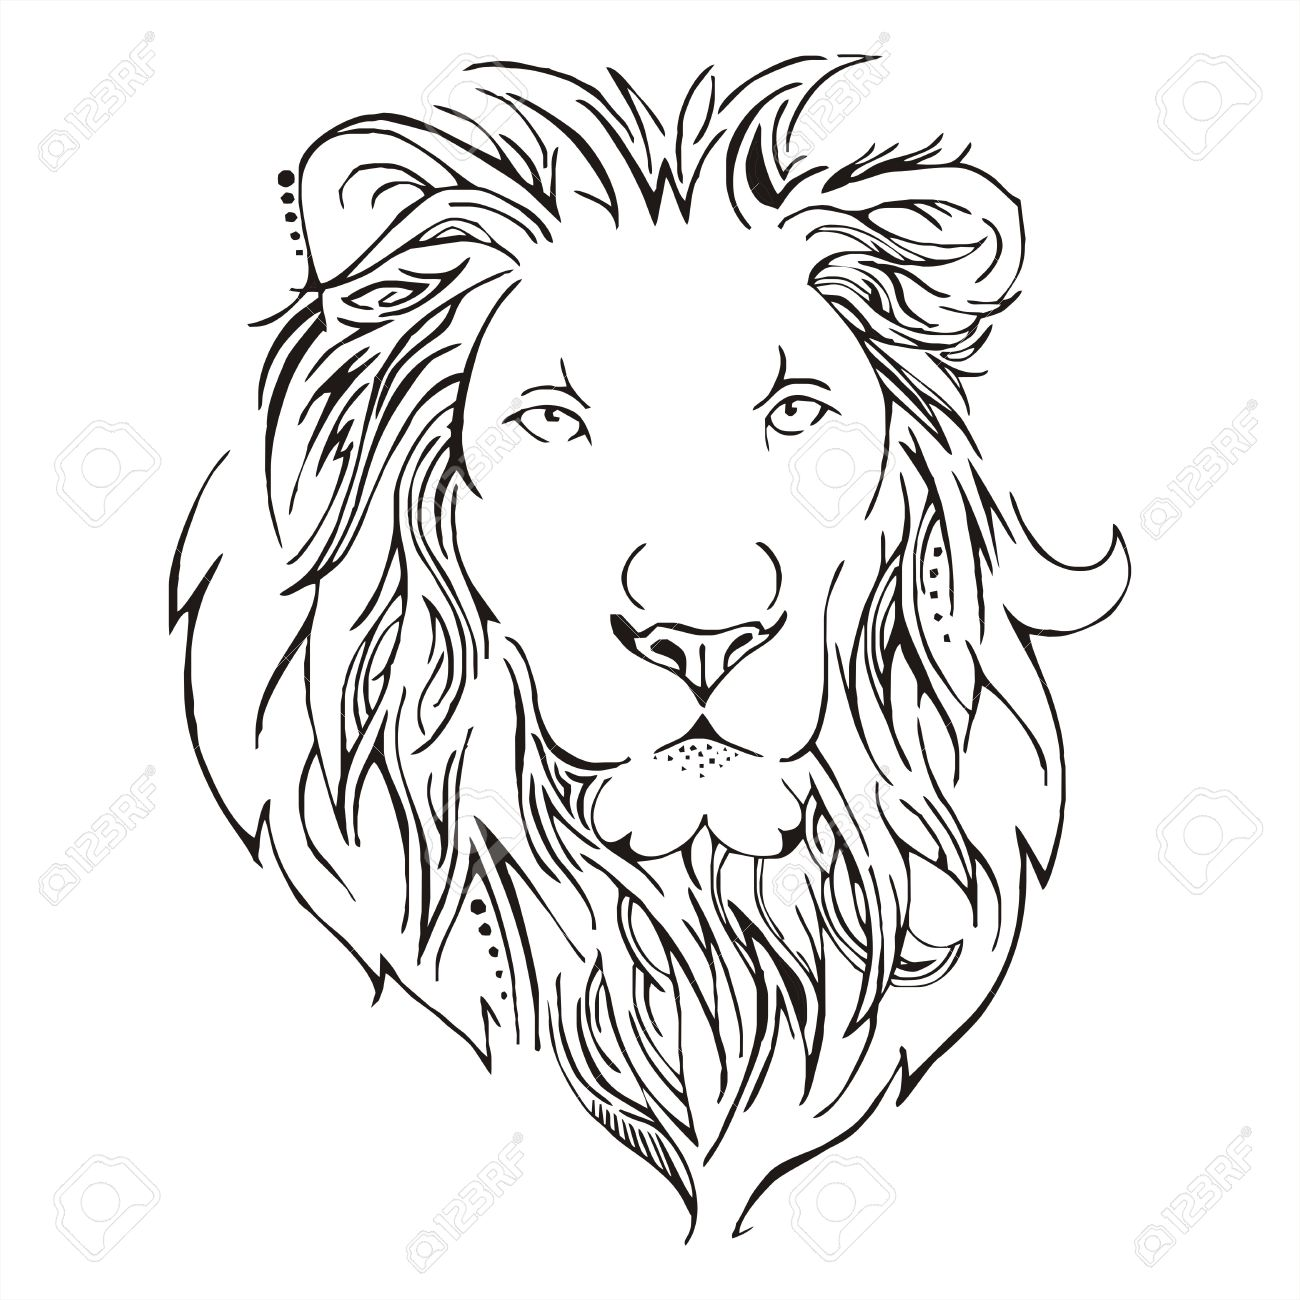 1300x1300 Lion Head Sketch Vector Royalty Free Cliparts, Vectors, And Stock